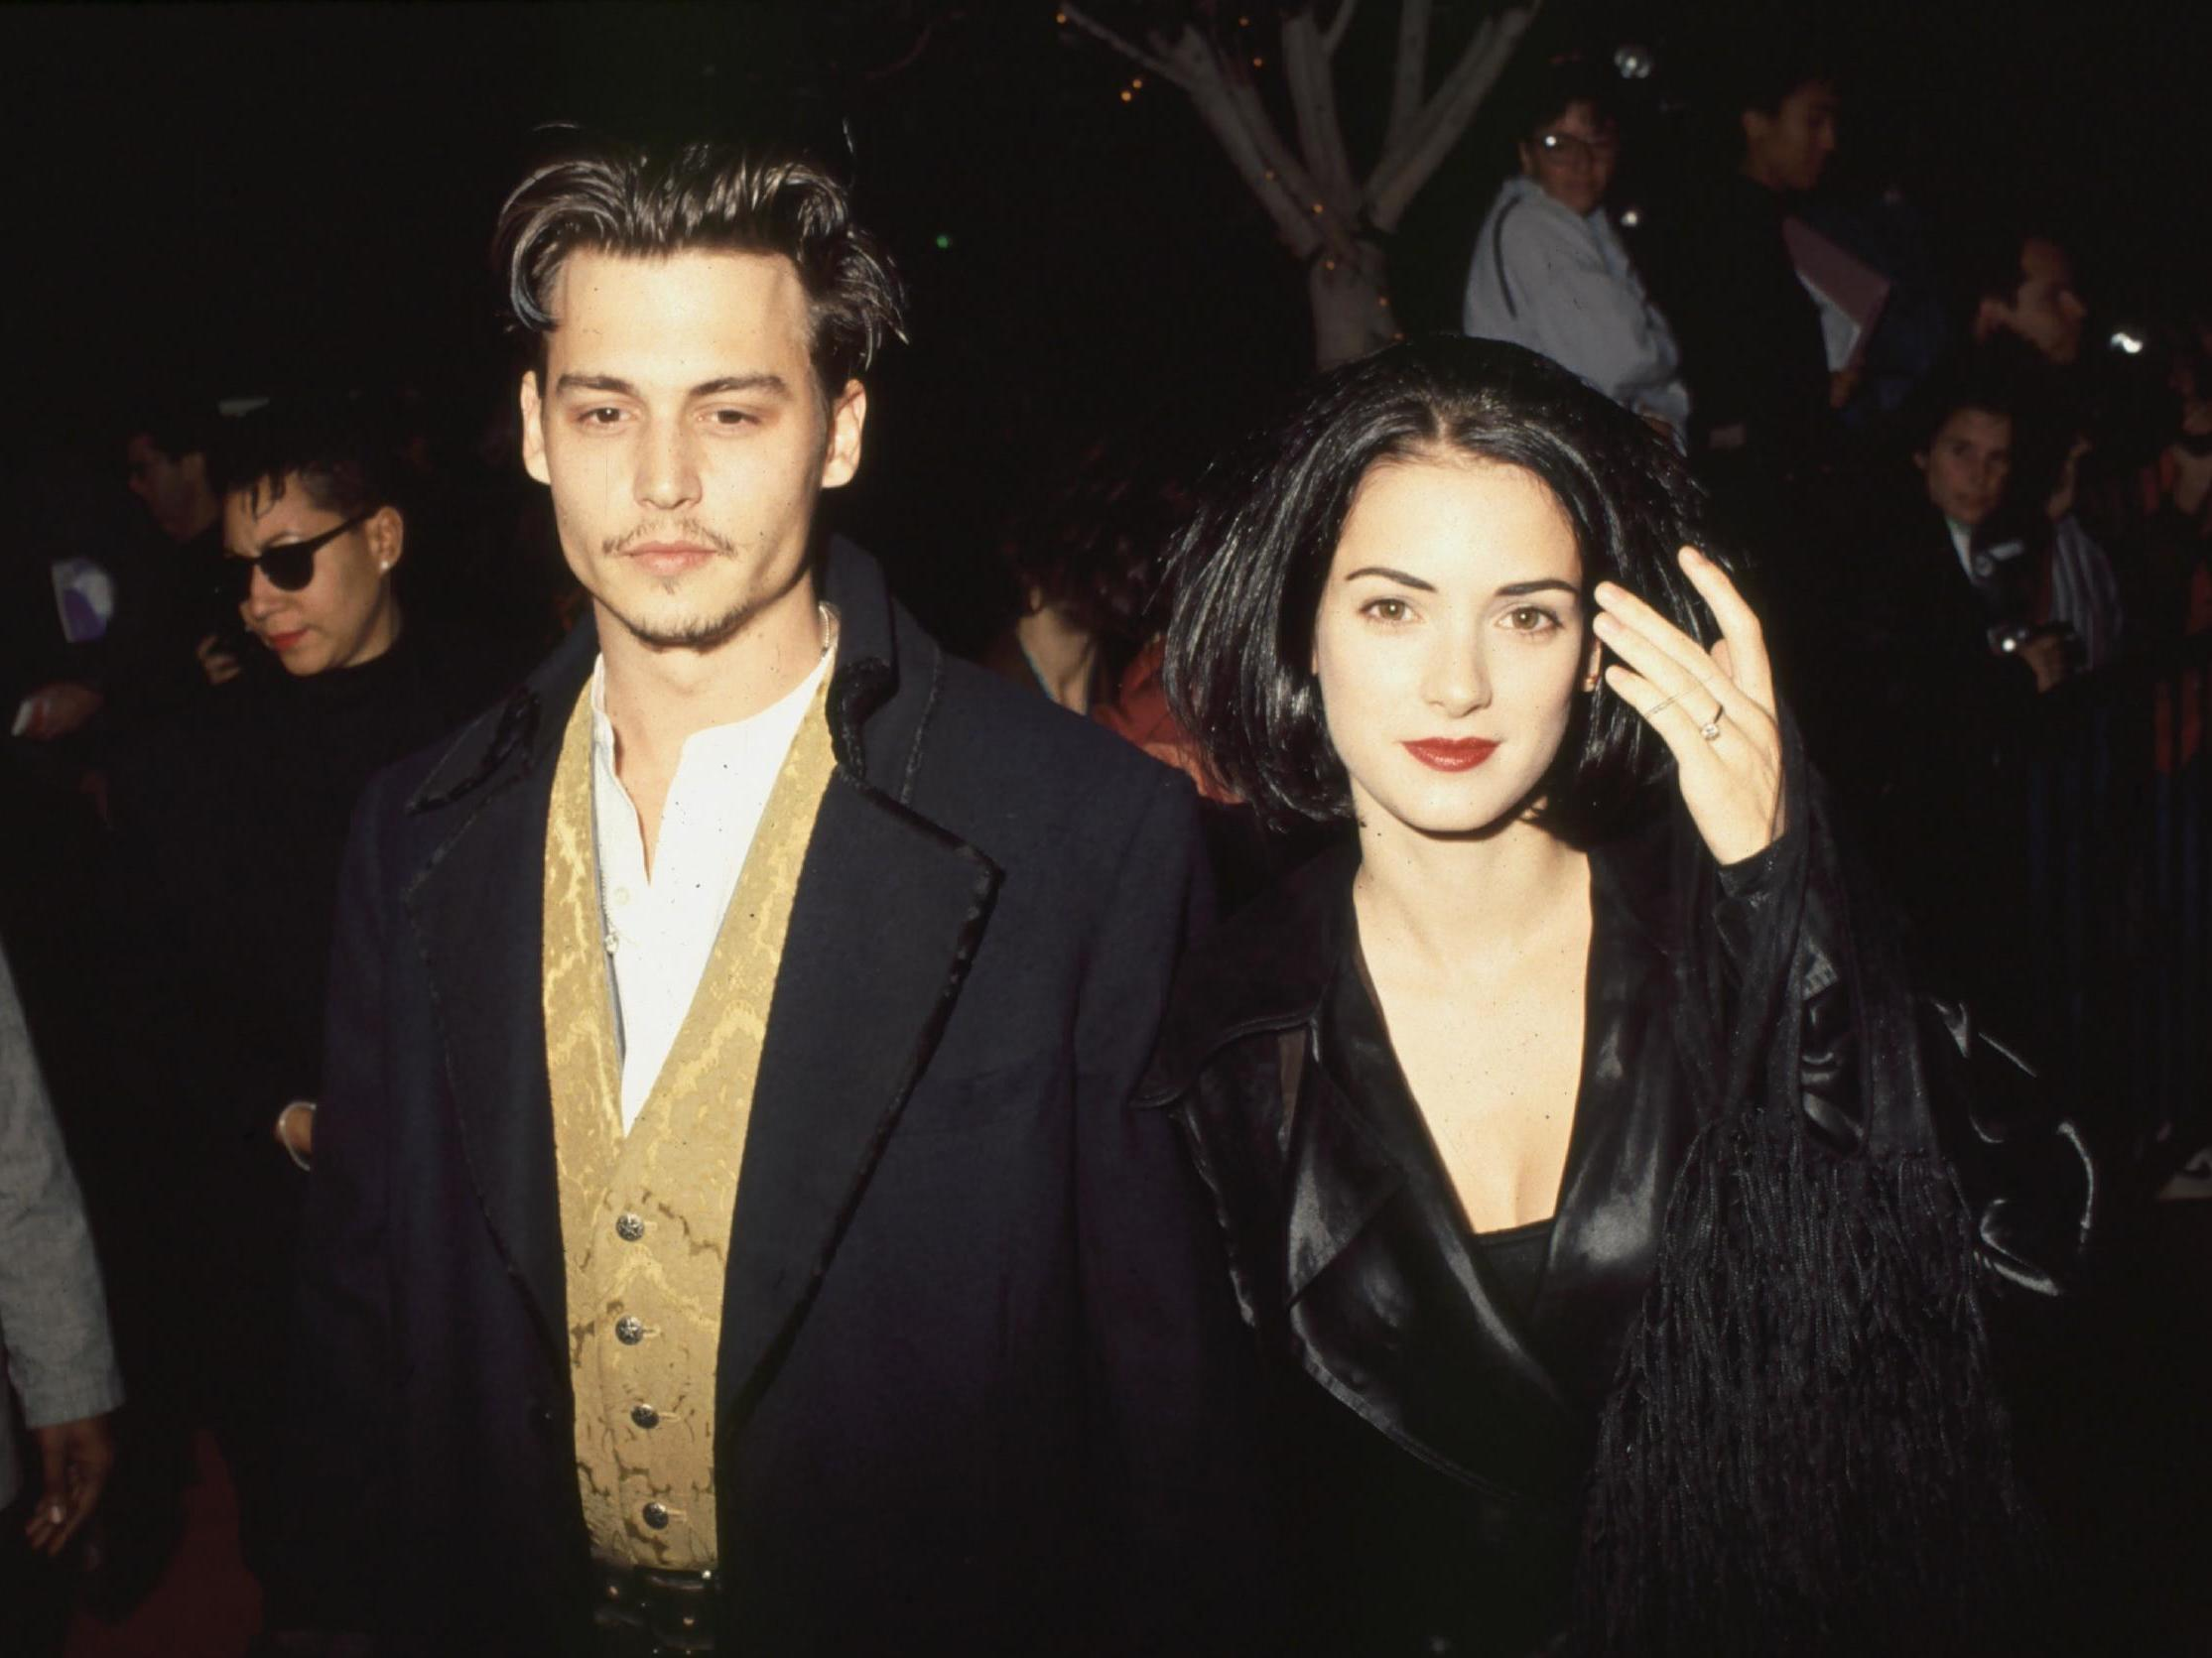 Johnny Depp is Trying to Woo Winona Ryder and Win her Love